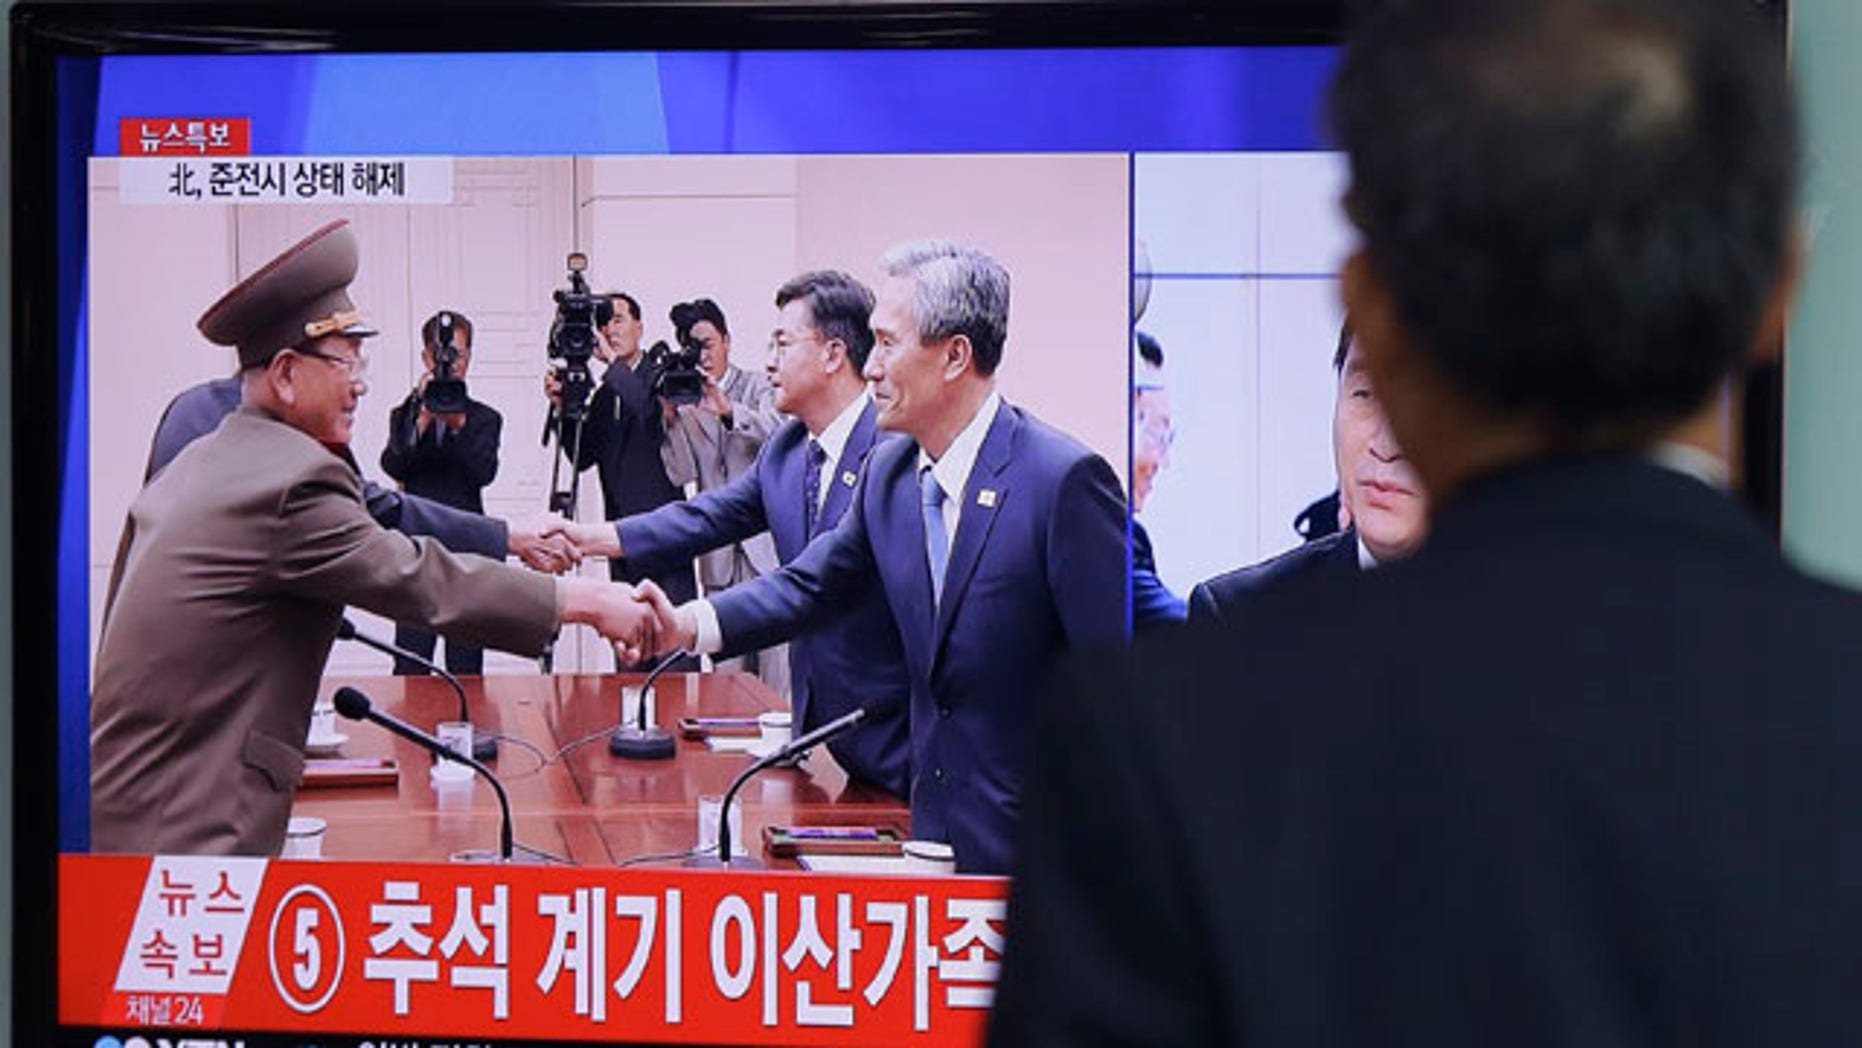 Aug. 25, 2015: A man at the Seoul Railway Station watches a TV news program reporting South Korea and North Korea reached an agreement. After 40-plus-hours of talks, the two Koreas on Tuesday pulled back from the brink with an accord that allows both sides to save face and avert the bloodshed they've been threatening each other with for weeks. (AP Photo/Ahn Young-joon)